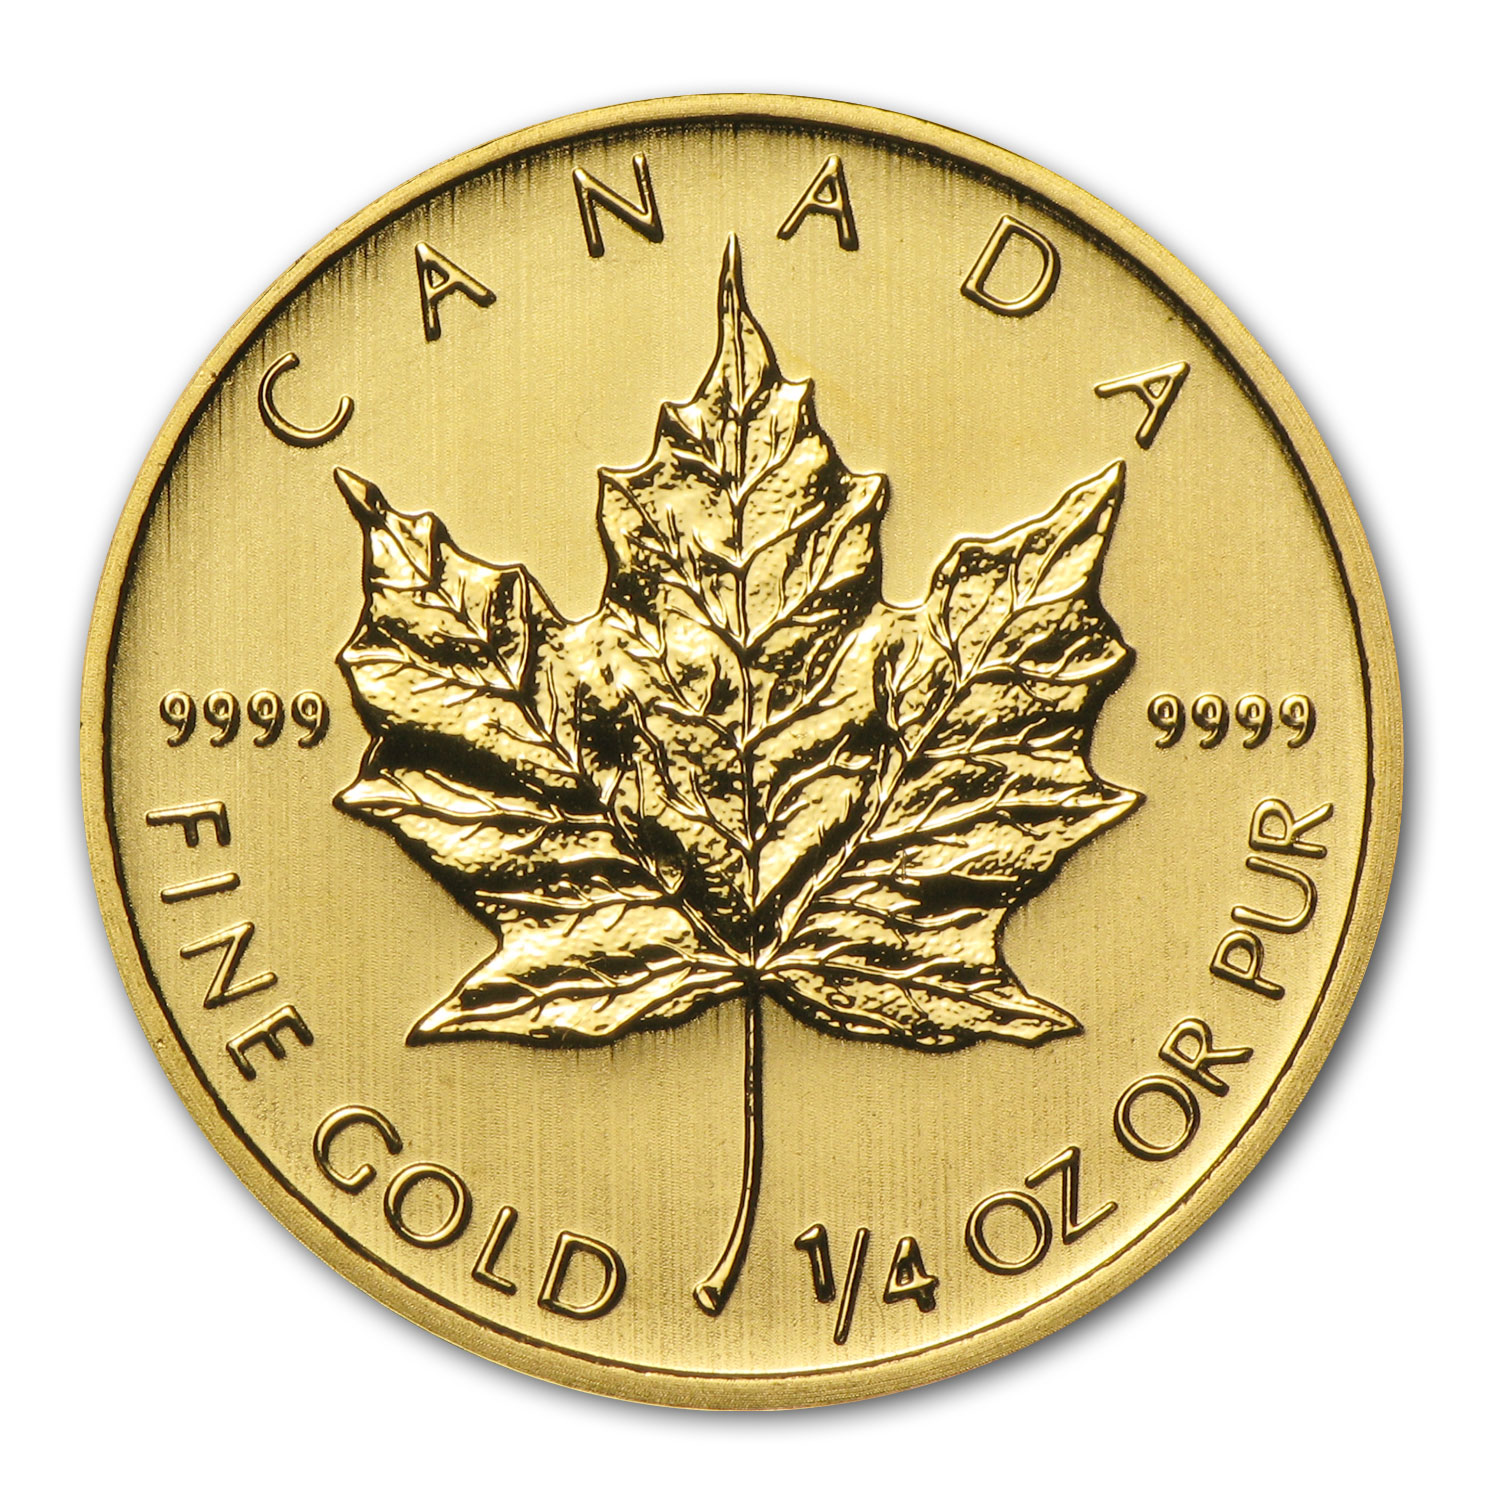 2014 1/4 oz Gold Canadian Maple Leaf